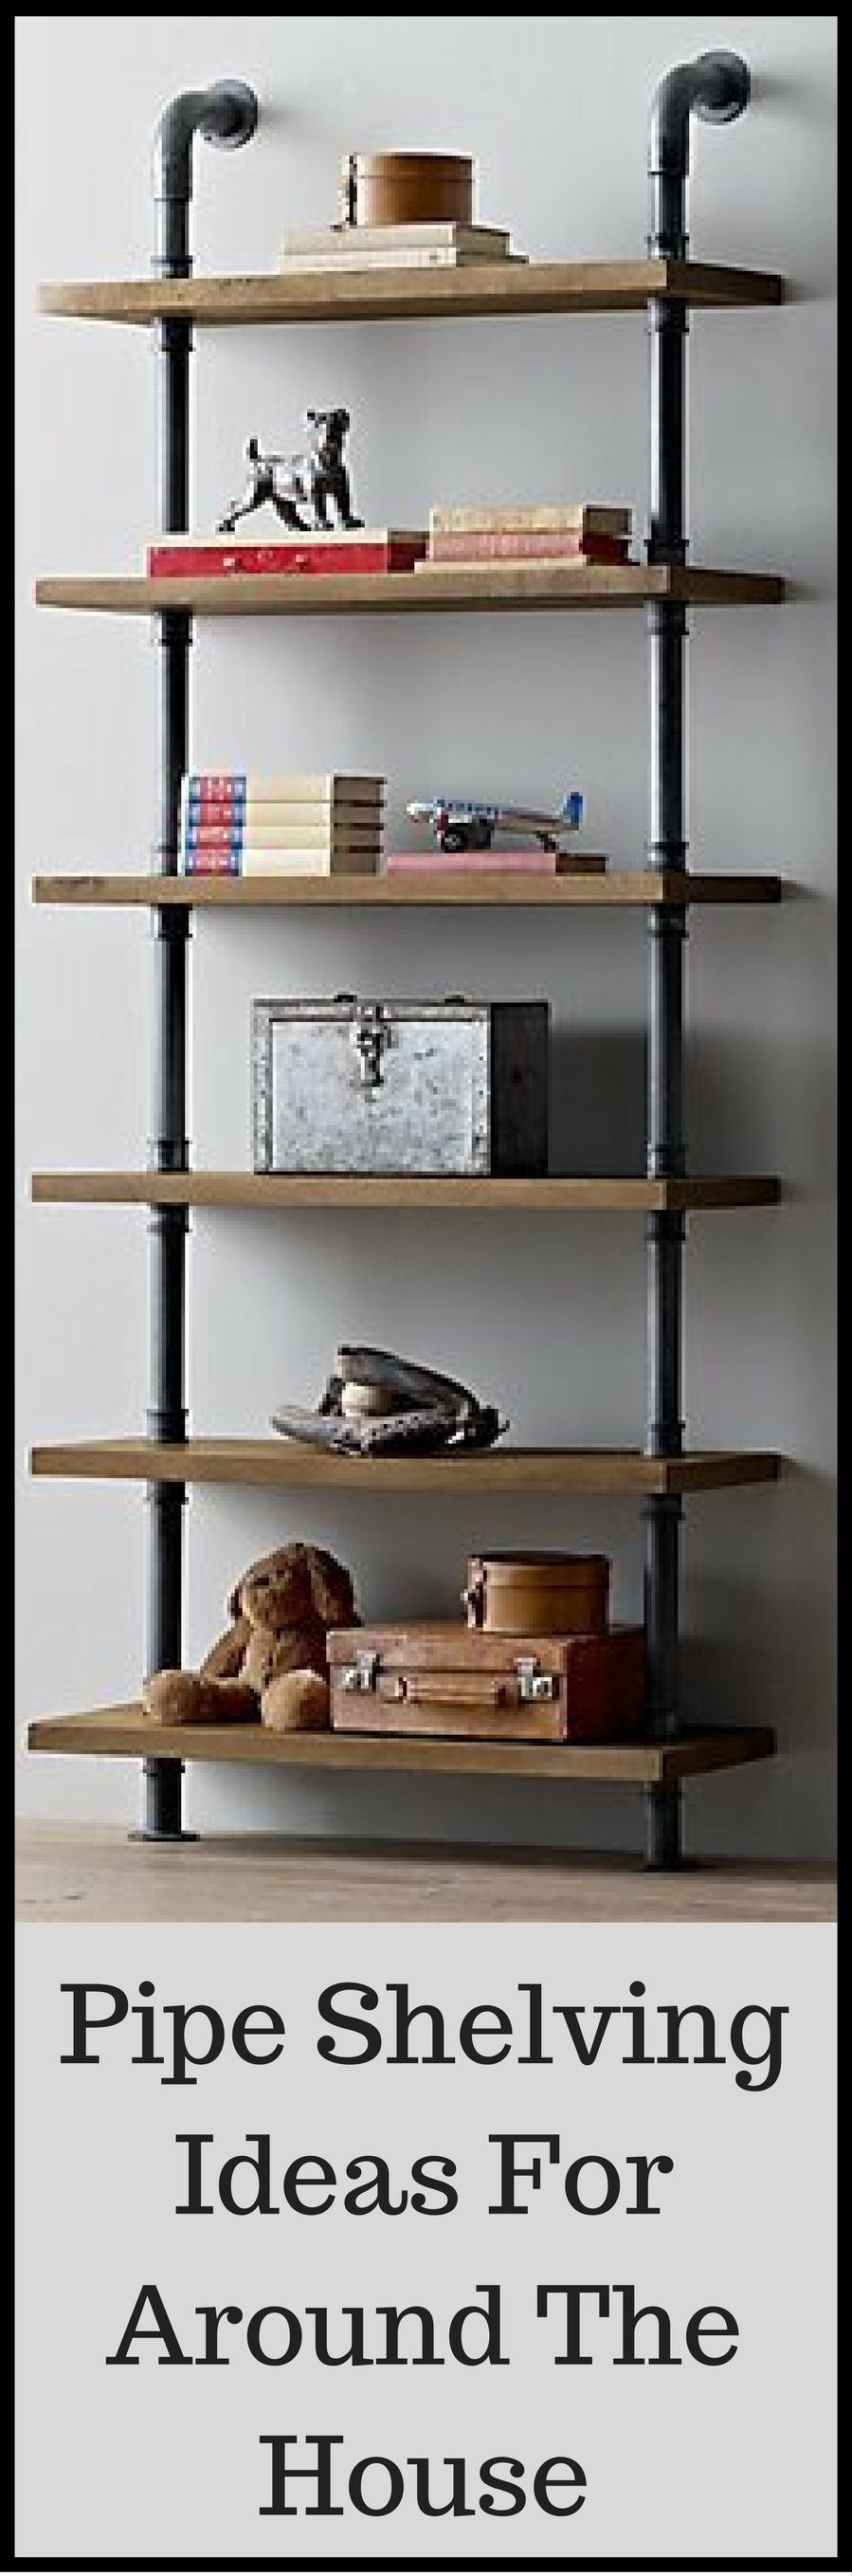 attractive ideas steampunk furniture. steampunk bedroom ideas  Tags decor 15 Steampunk Bedroom Decorating Ideas for your Home Shelving